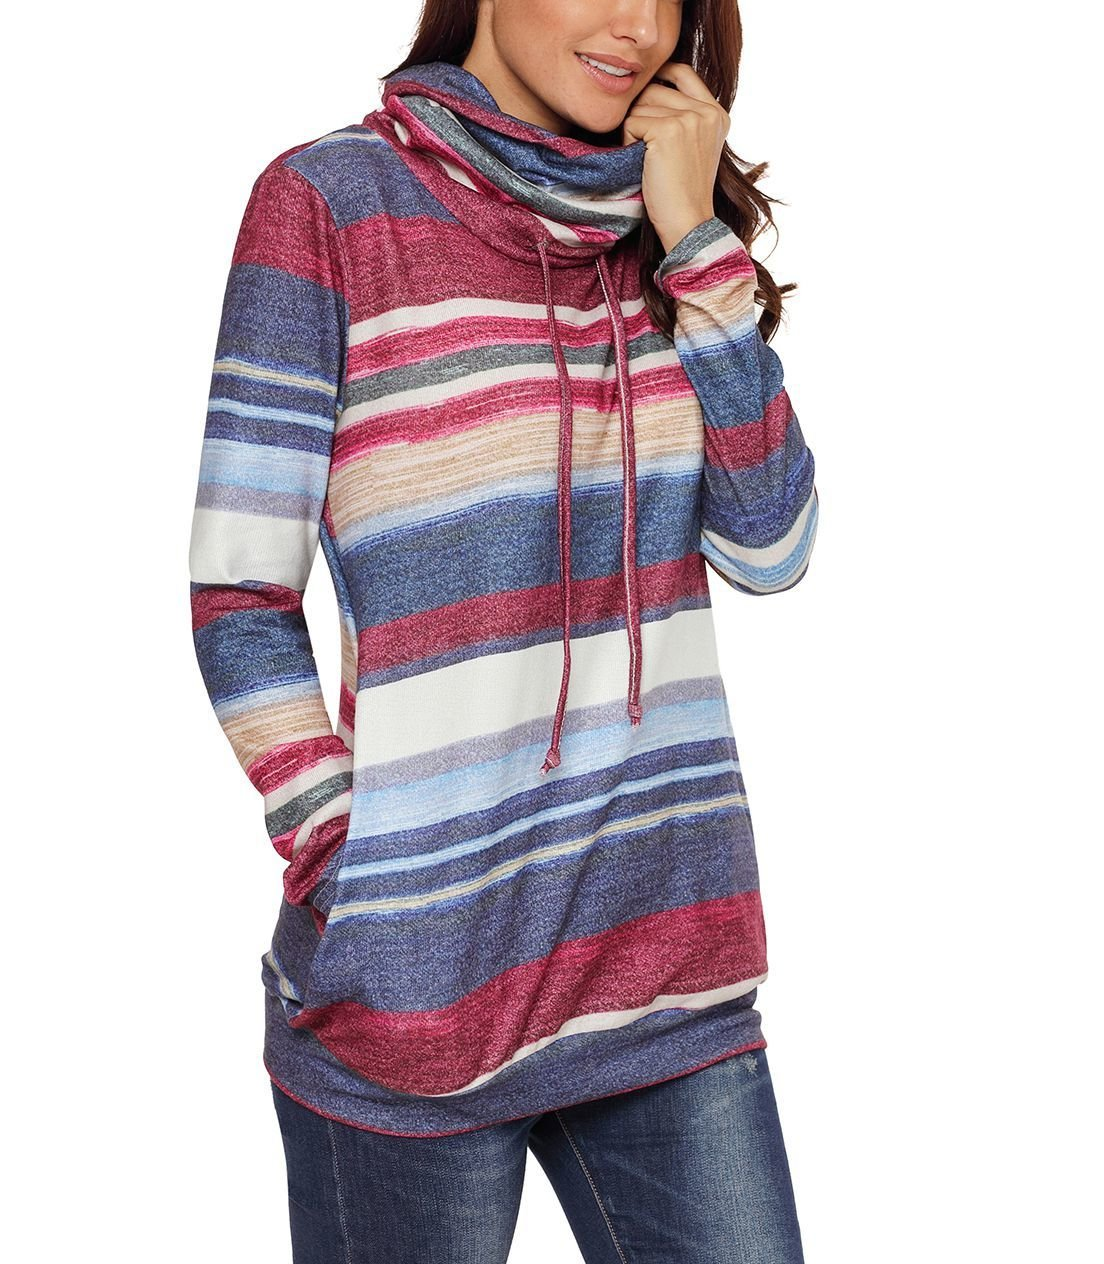 Large Size Top with Drawstring Cowl Neck